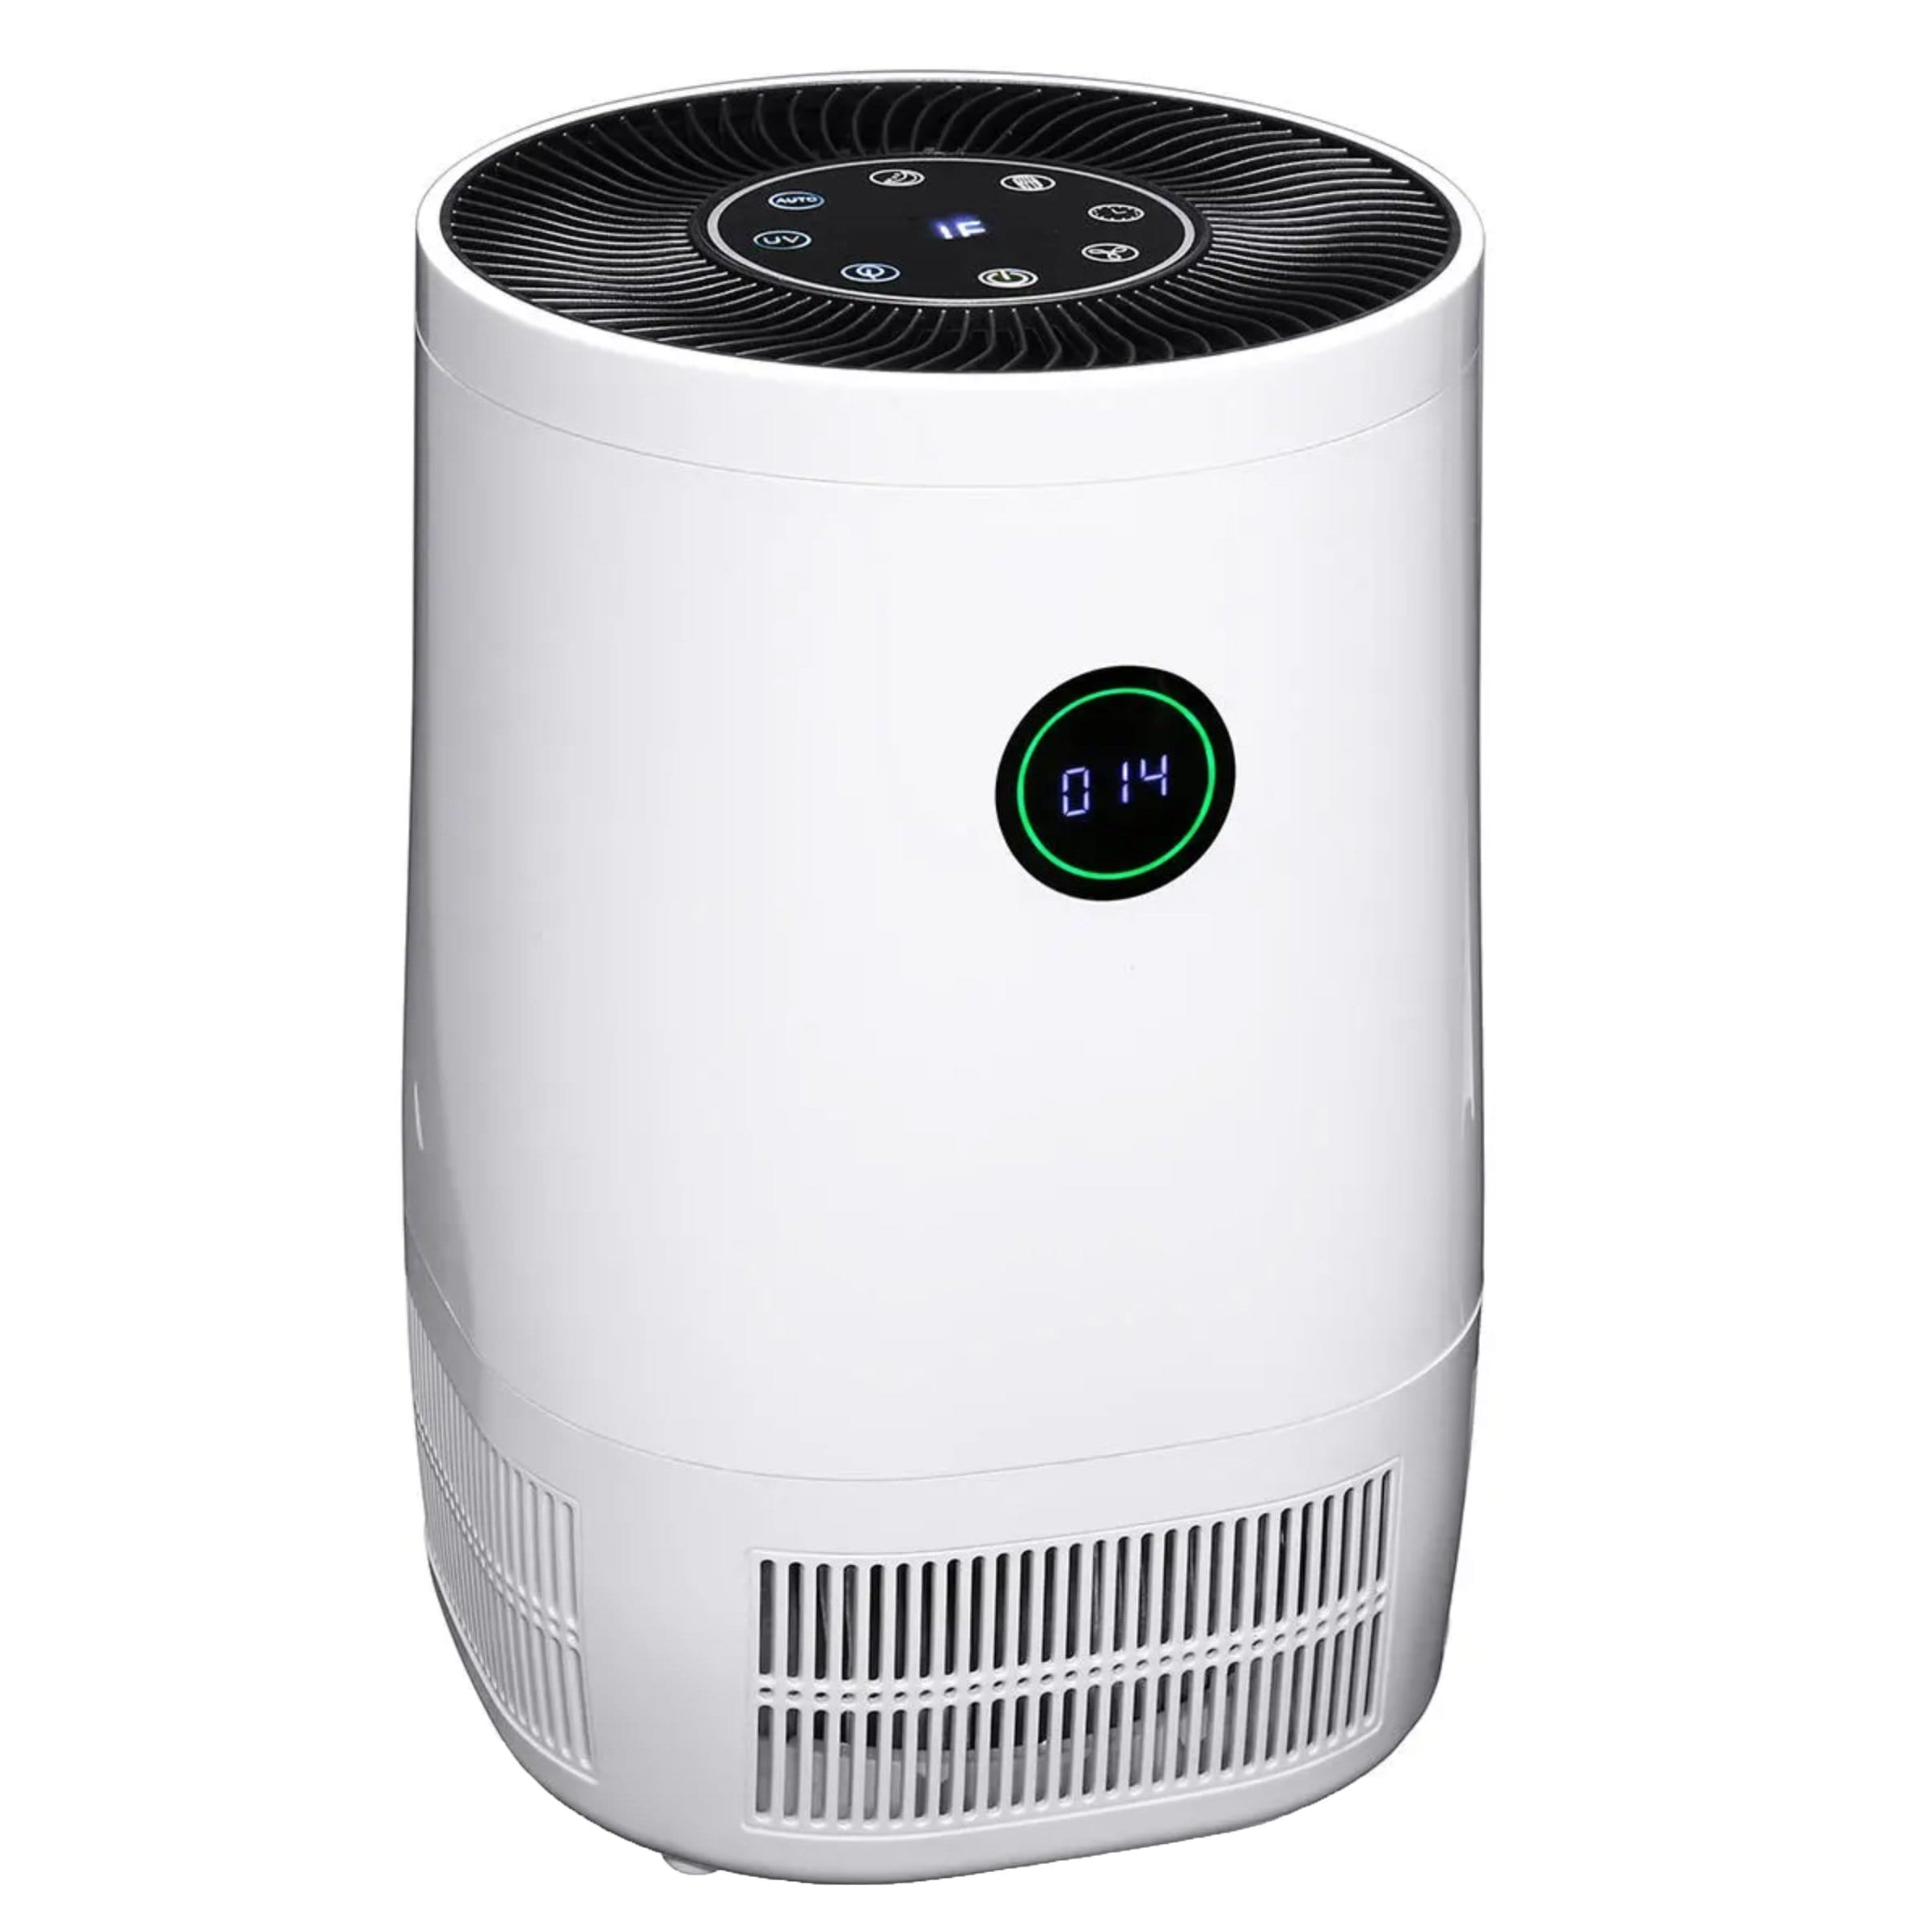 Horizon Care Air Purifier with Hepa Filter for Home and Office